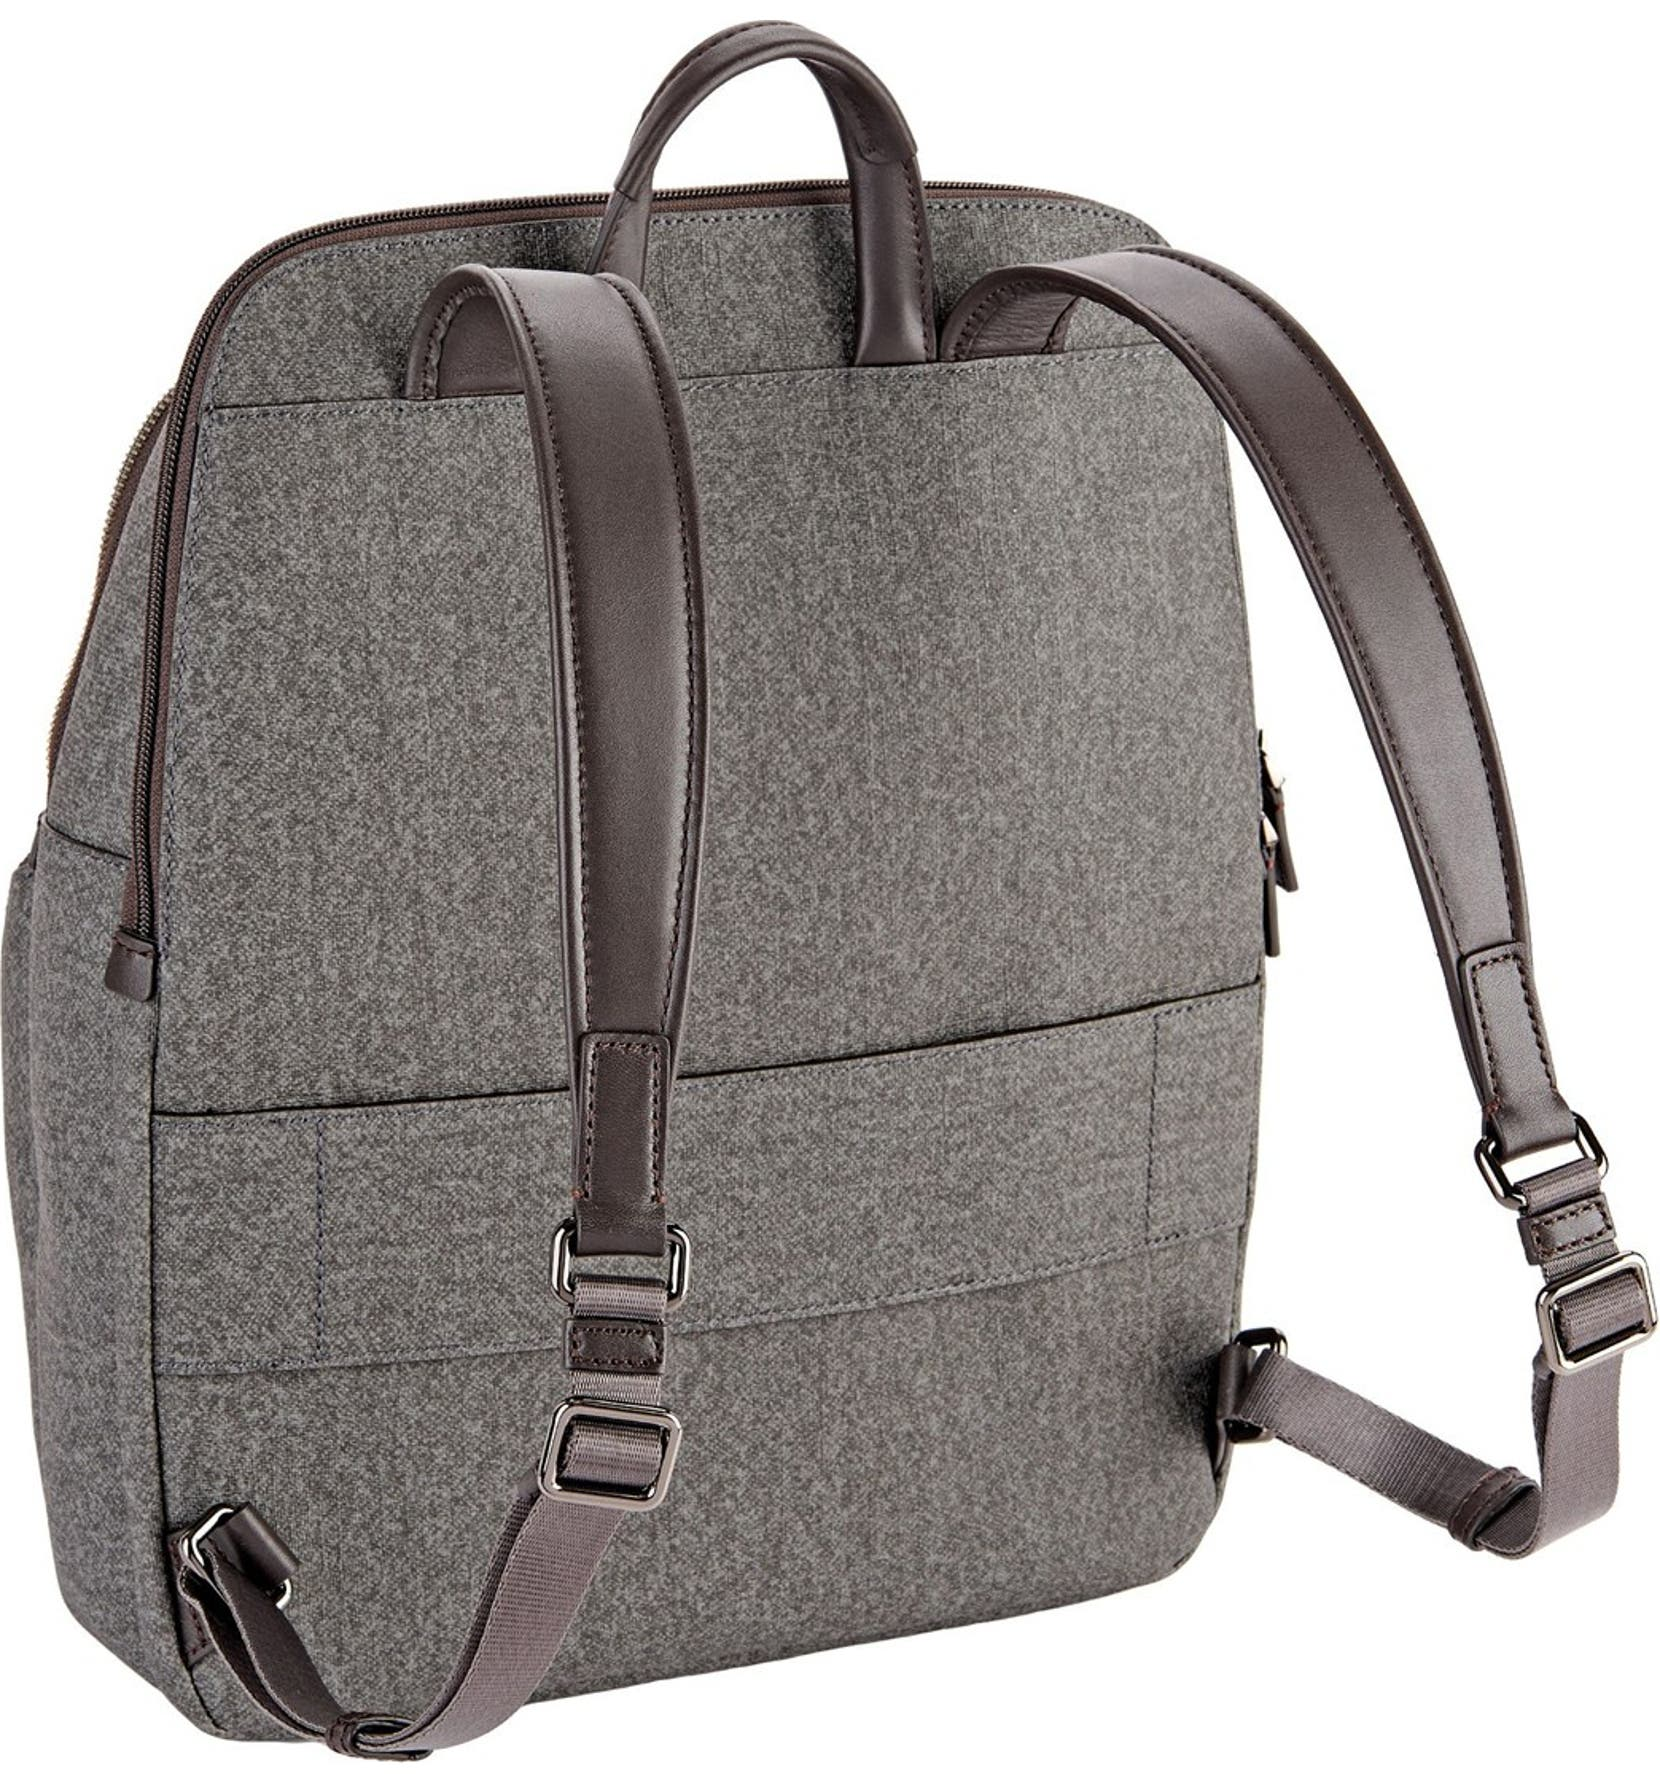 10f64ca19 Tumi 'Sinclair Harlow' Coated Canvas Laptop Backpack | Nordstrom